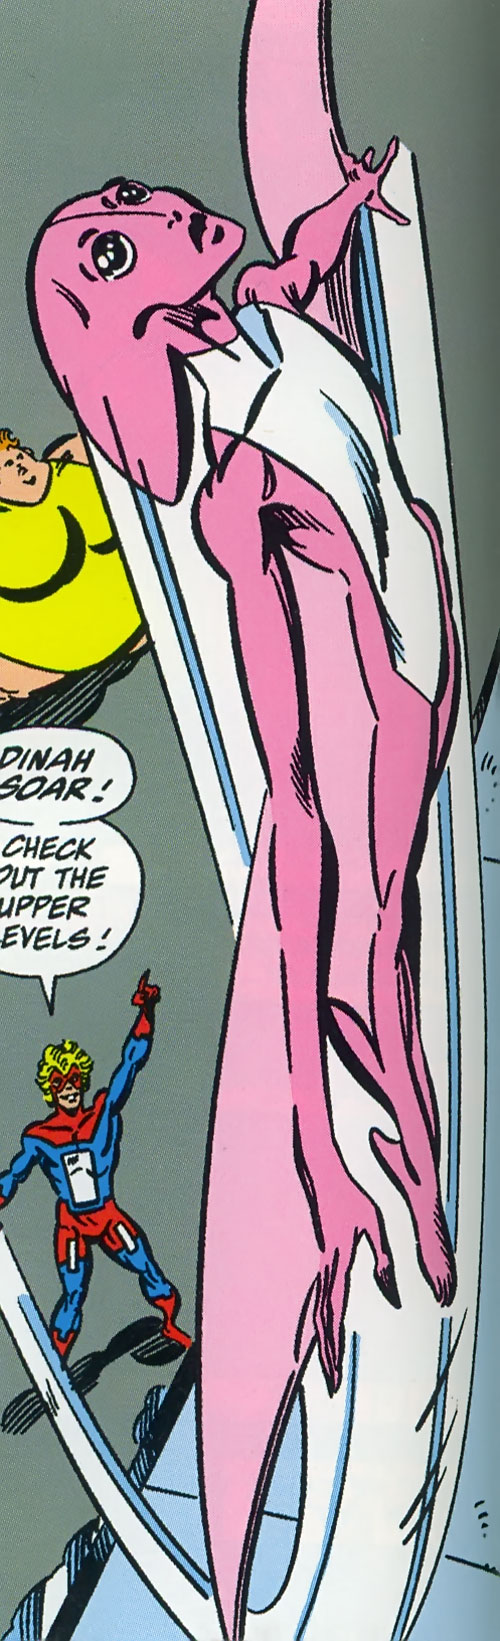 Dinah Soar of the Great Lakes Avengers (Marvel Comics) and Mister Immortal